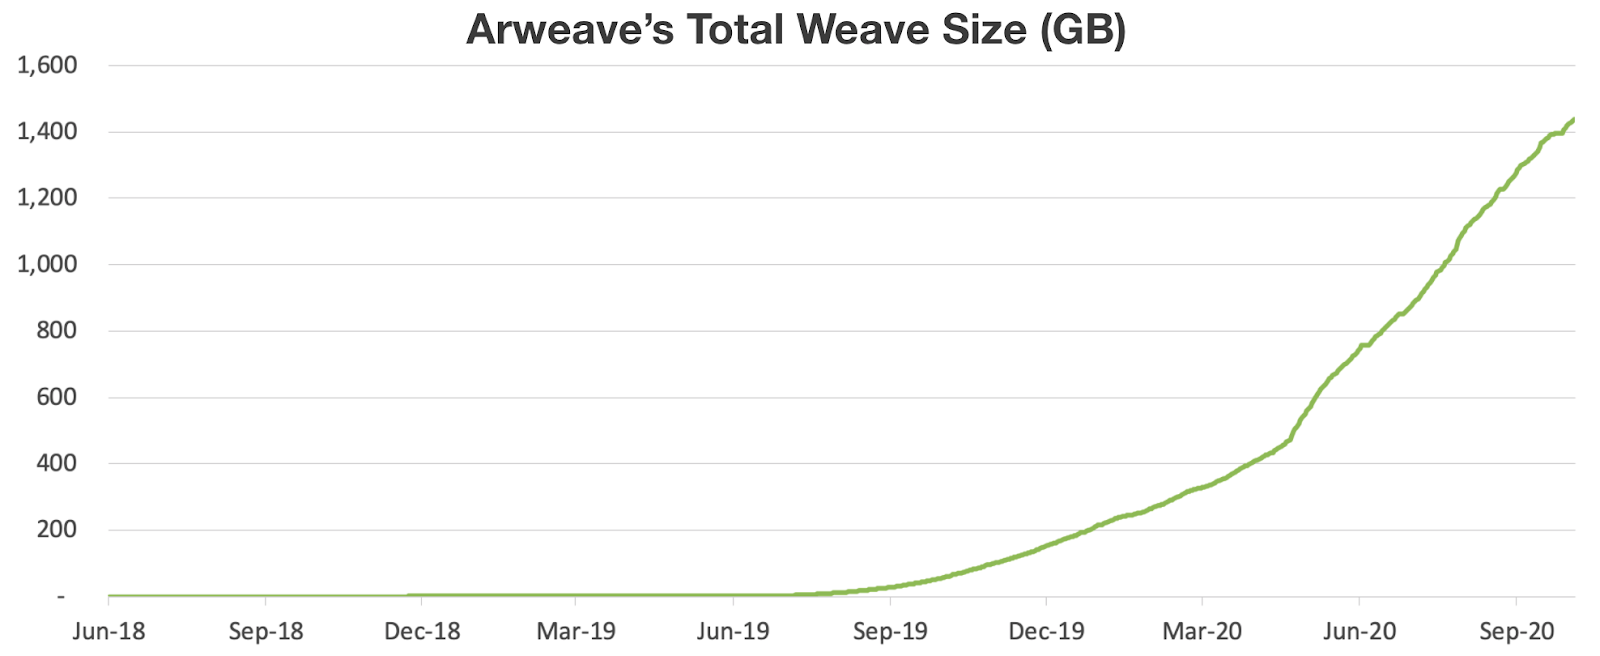 arweave's total weave size (GB)